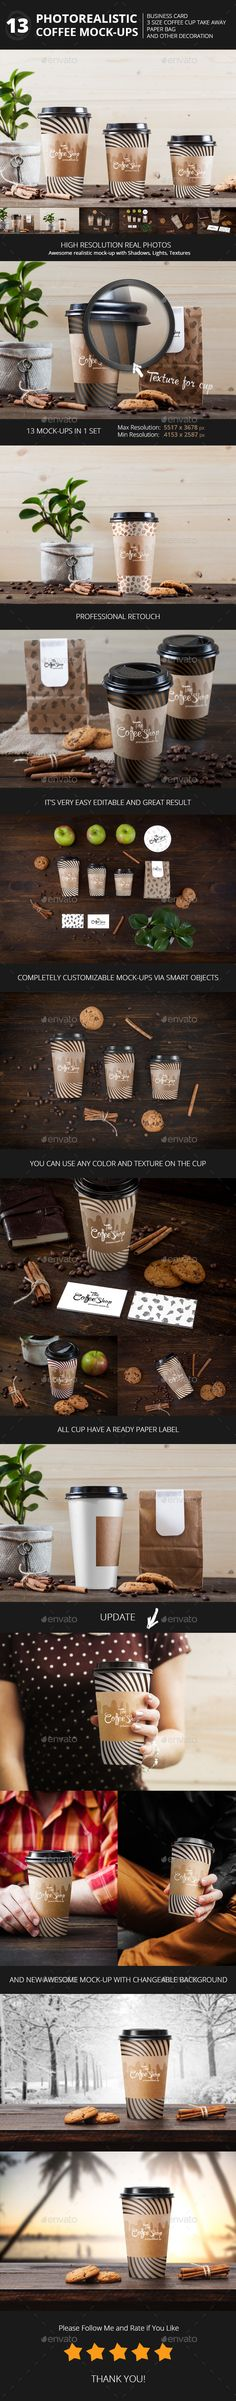 Coffee Collection Branding Mock-Up's by Temaphoto Features 9 PSD Realistic Mock-Ups High Quality Coffee and Coffee Themes Object Fully Named